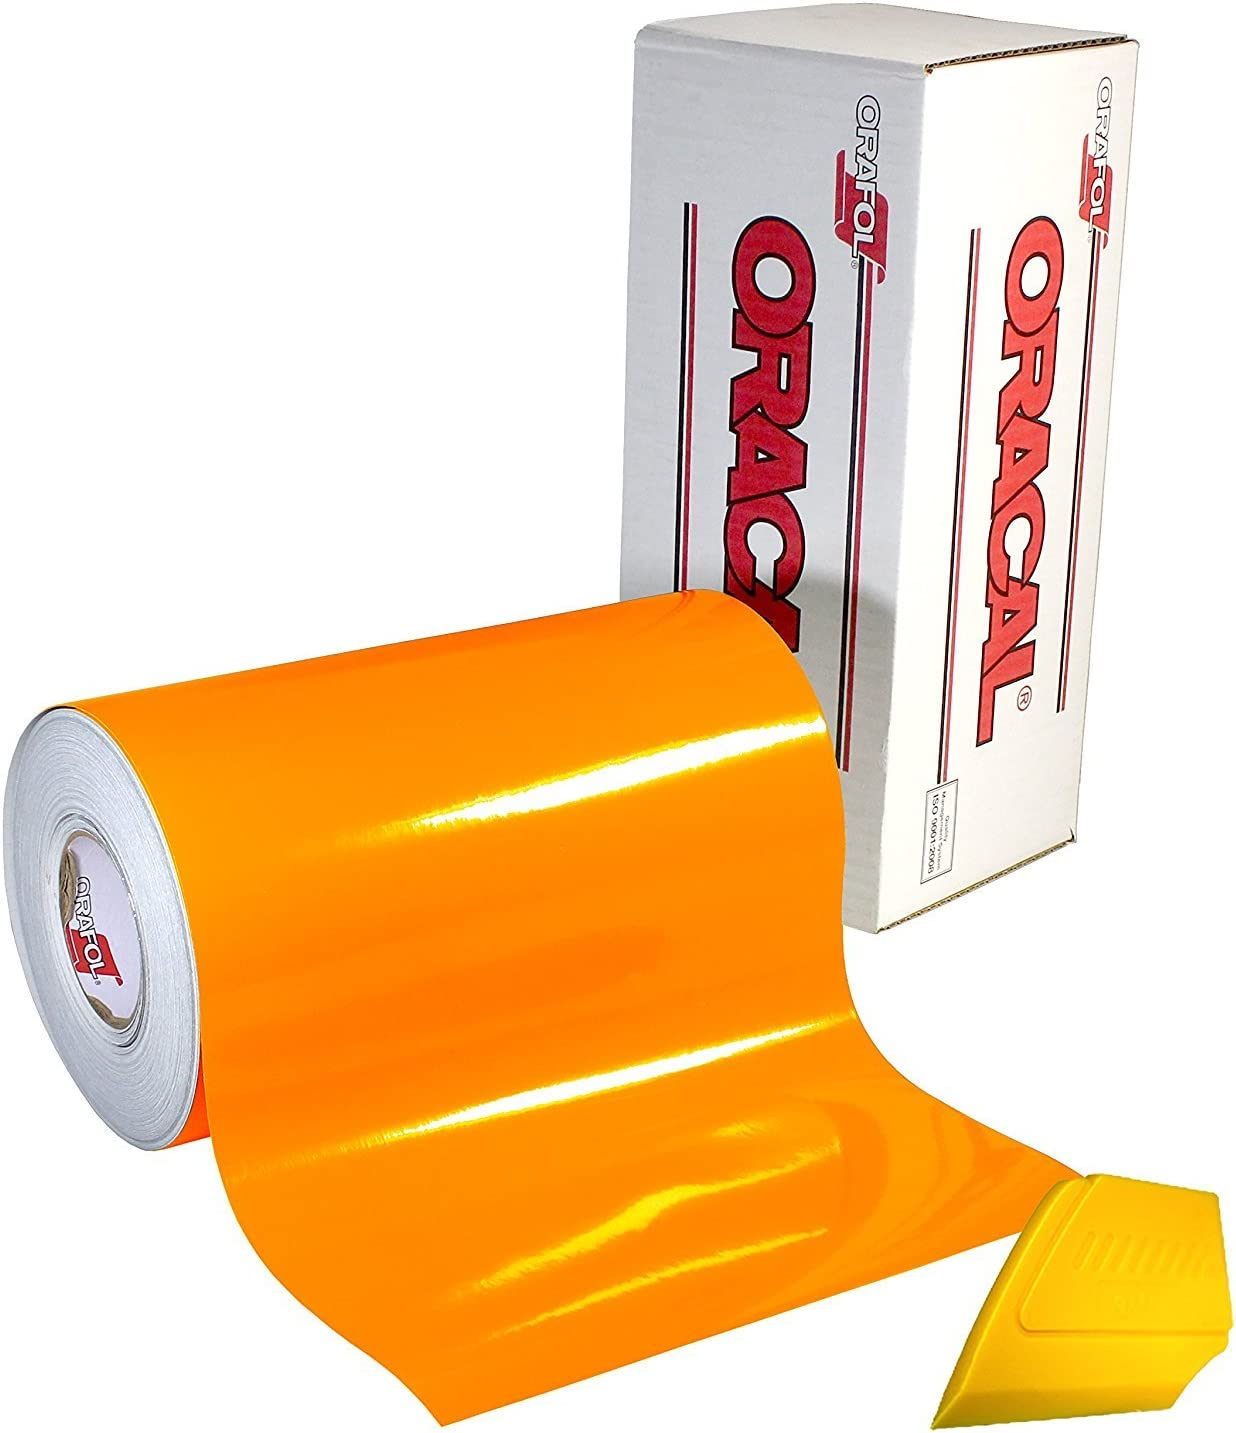 Silhouette /& Cameo plotters VViViD DECO65 Neon Fluorescent Orange Permanent Adhesive Crafting Vinyl Roll 12 Inches x 5 Feet Gloss High Grade Industrial Strength Film For Cricut